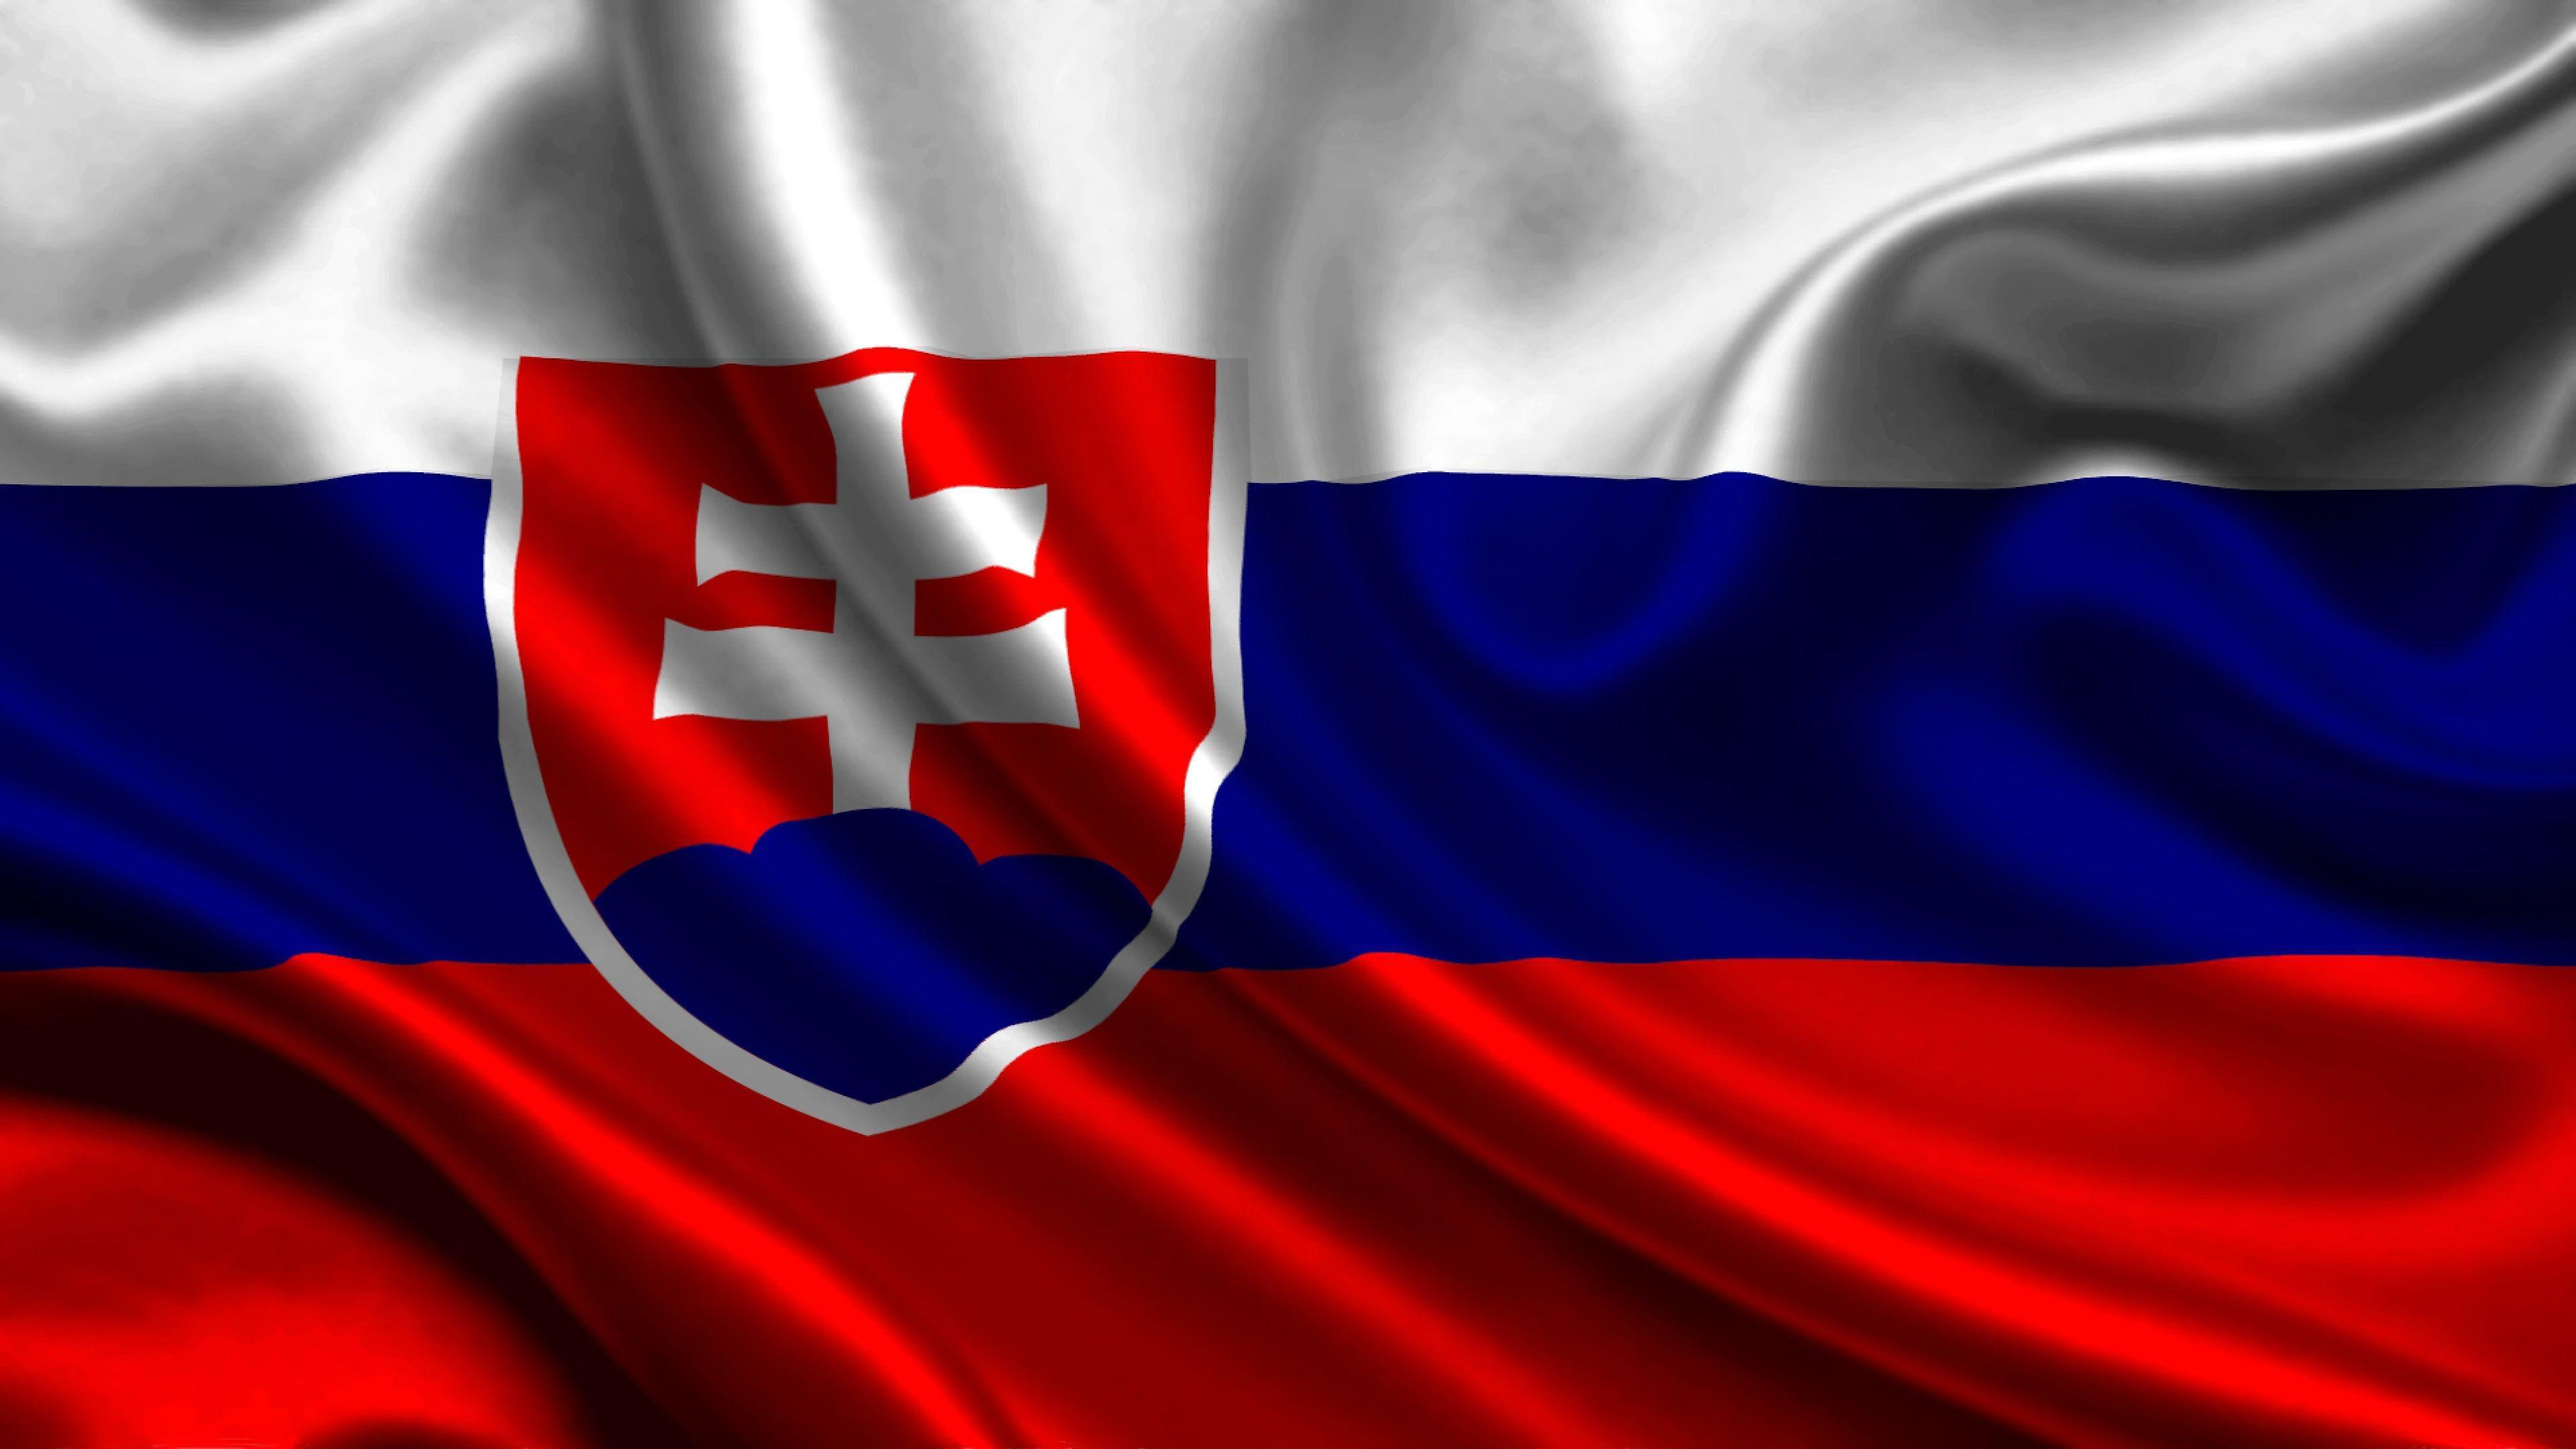 Slovakia Flag Wallpapers for Android   APK Download 3840x2160